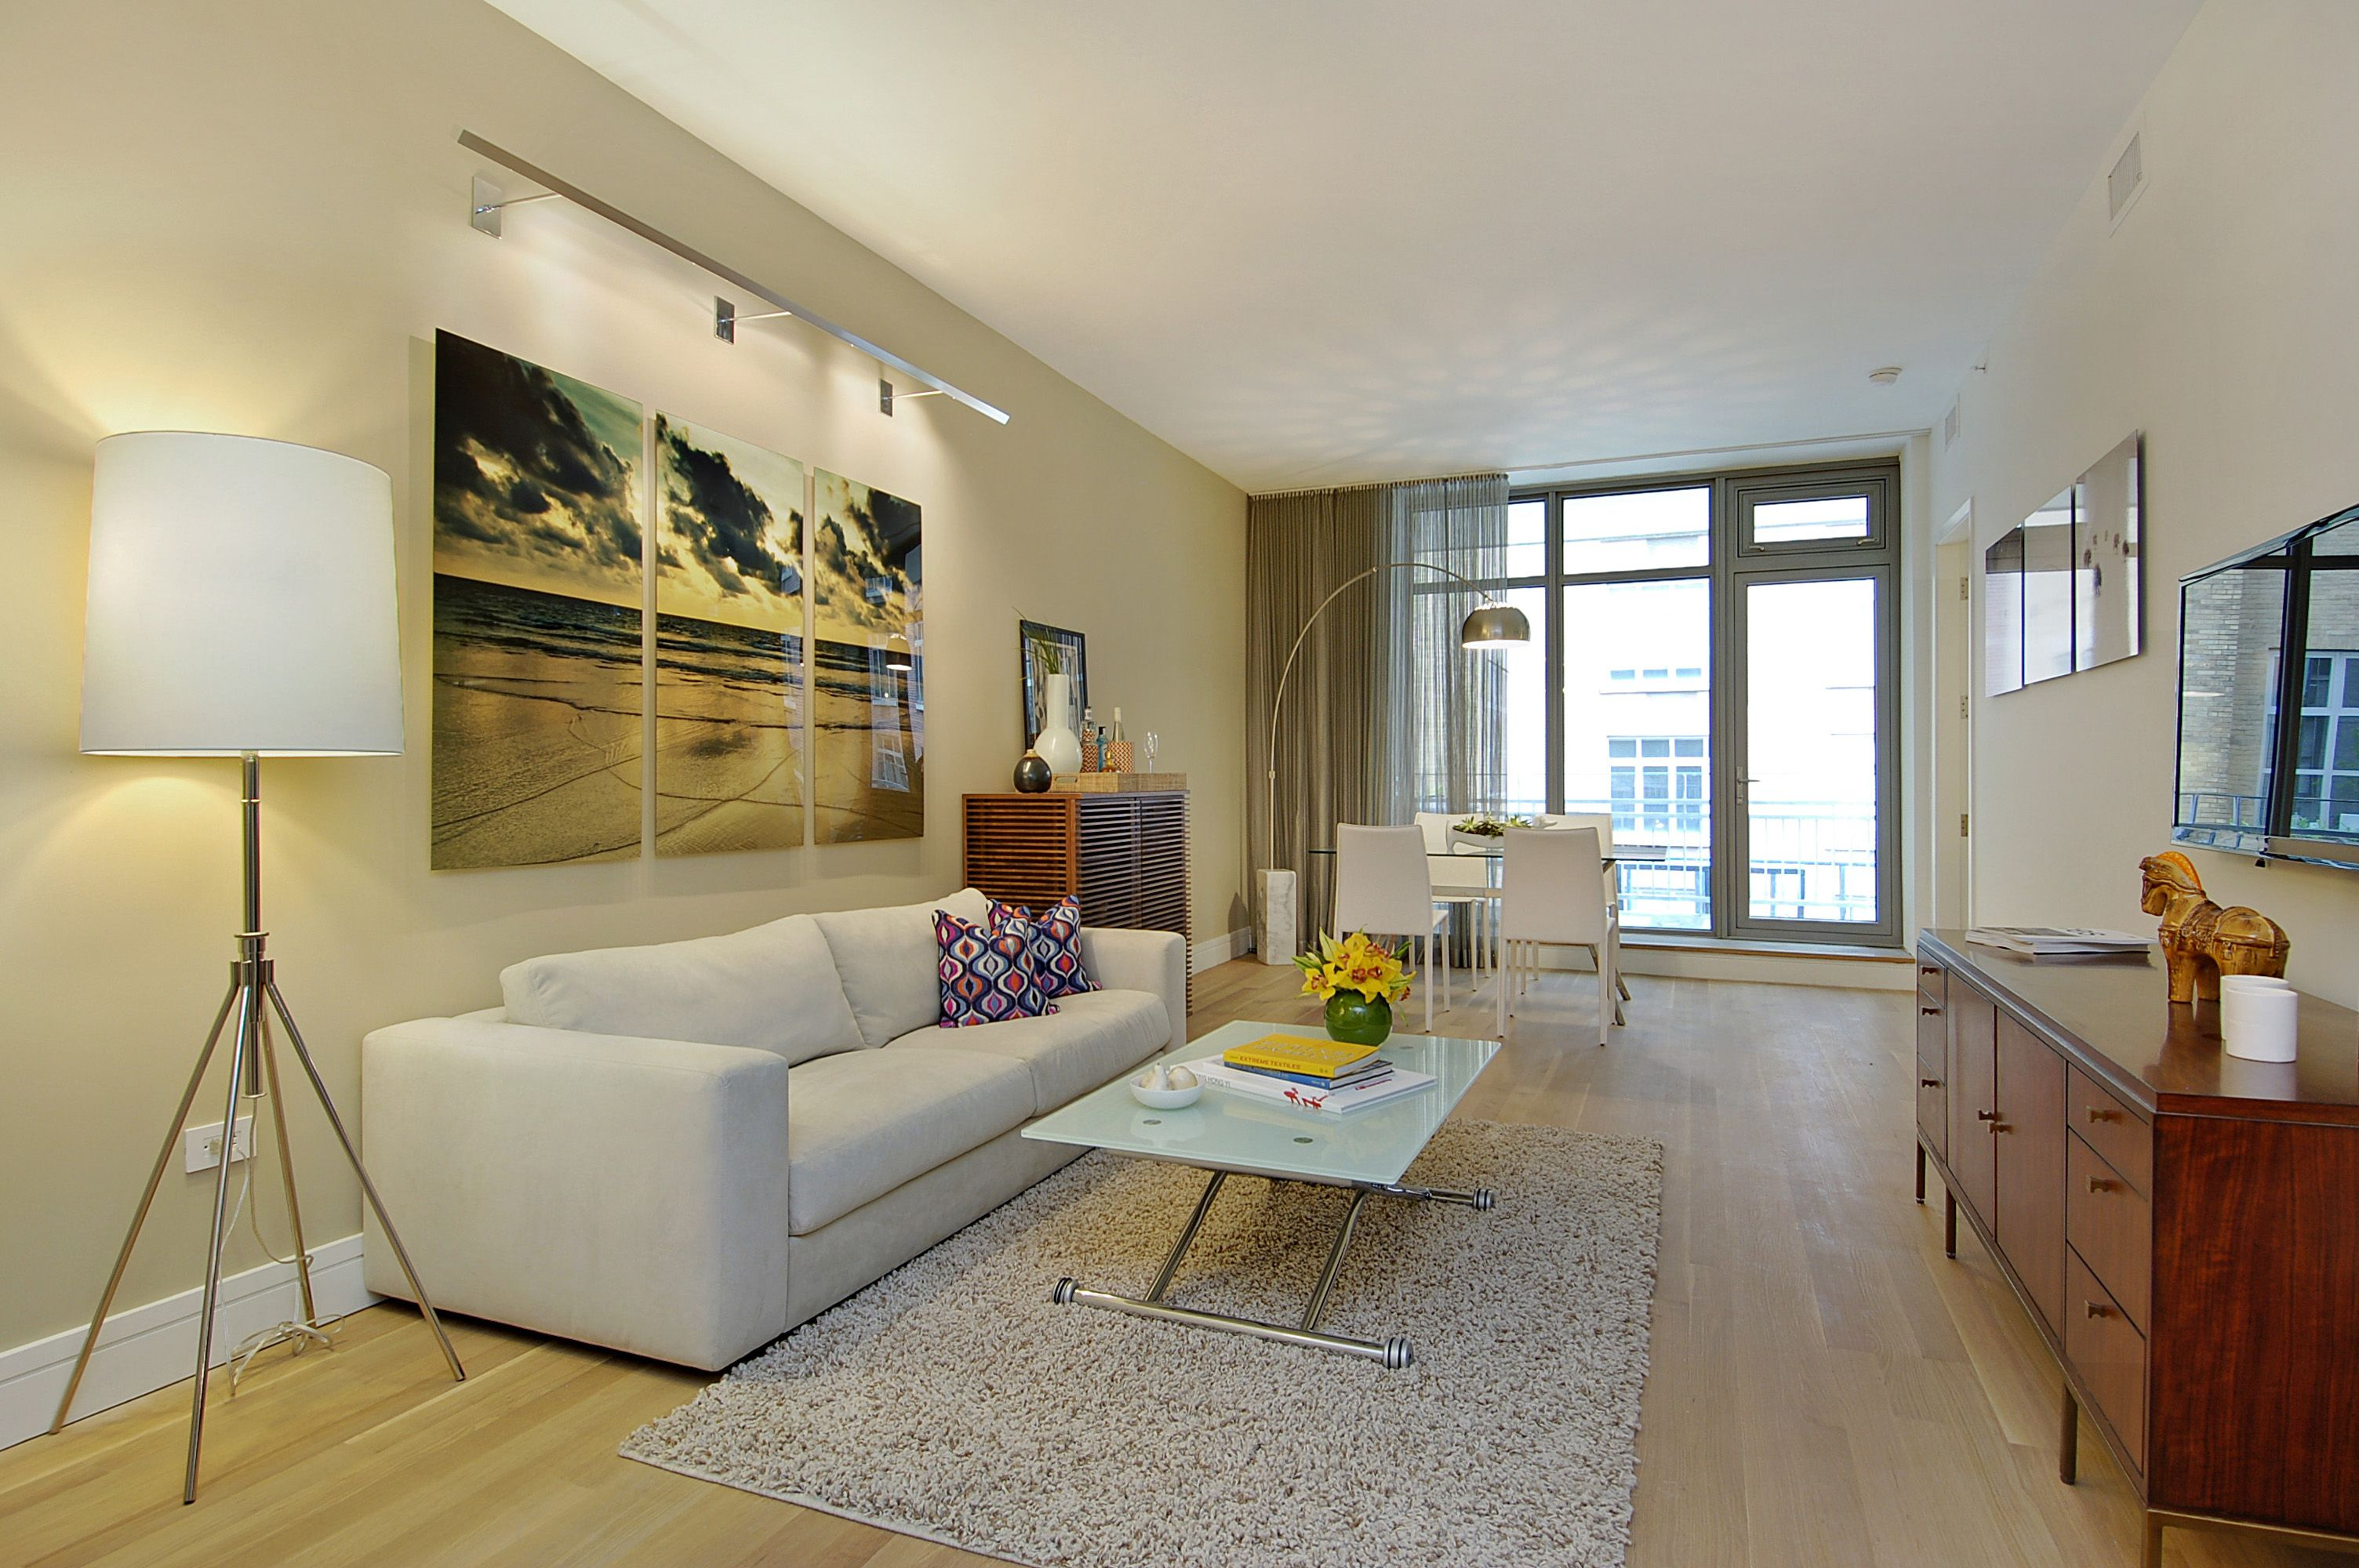 home decorating apartments in lovely improvement rent nyc basement room a best for design and fancy inspirational view